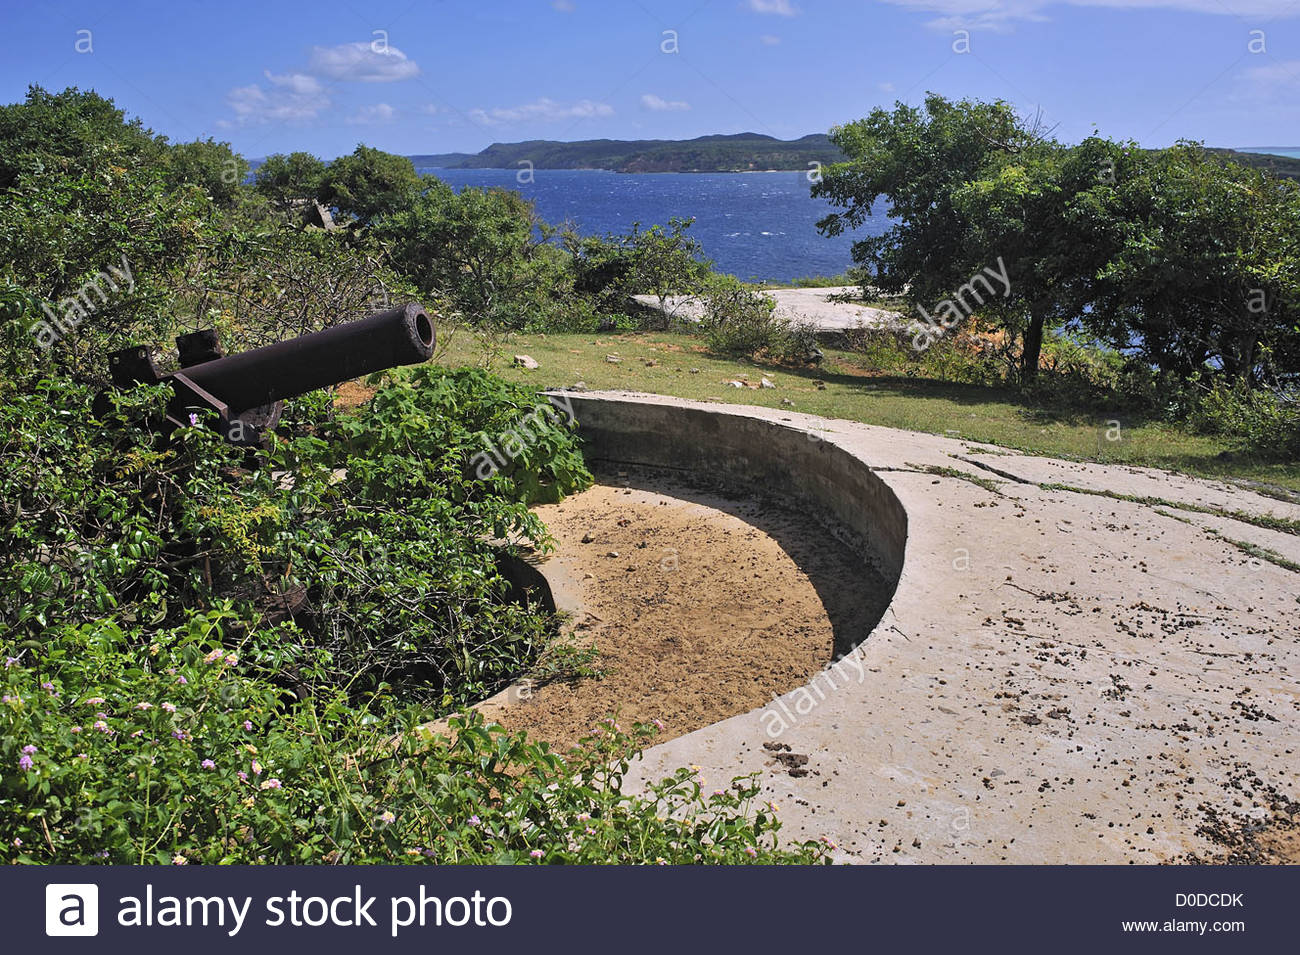 OLD FRENCH CANNON FROM CRUISER JULES FERRY SENT DIEGO SUAREZ EQUIP BATTERY ON VIEWPOINT DIEGO SUAREZ REPUBLIC MADAGASCAR - Stock Image